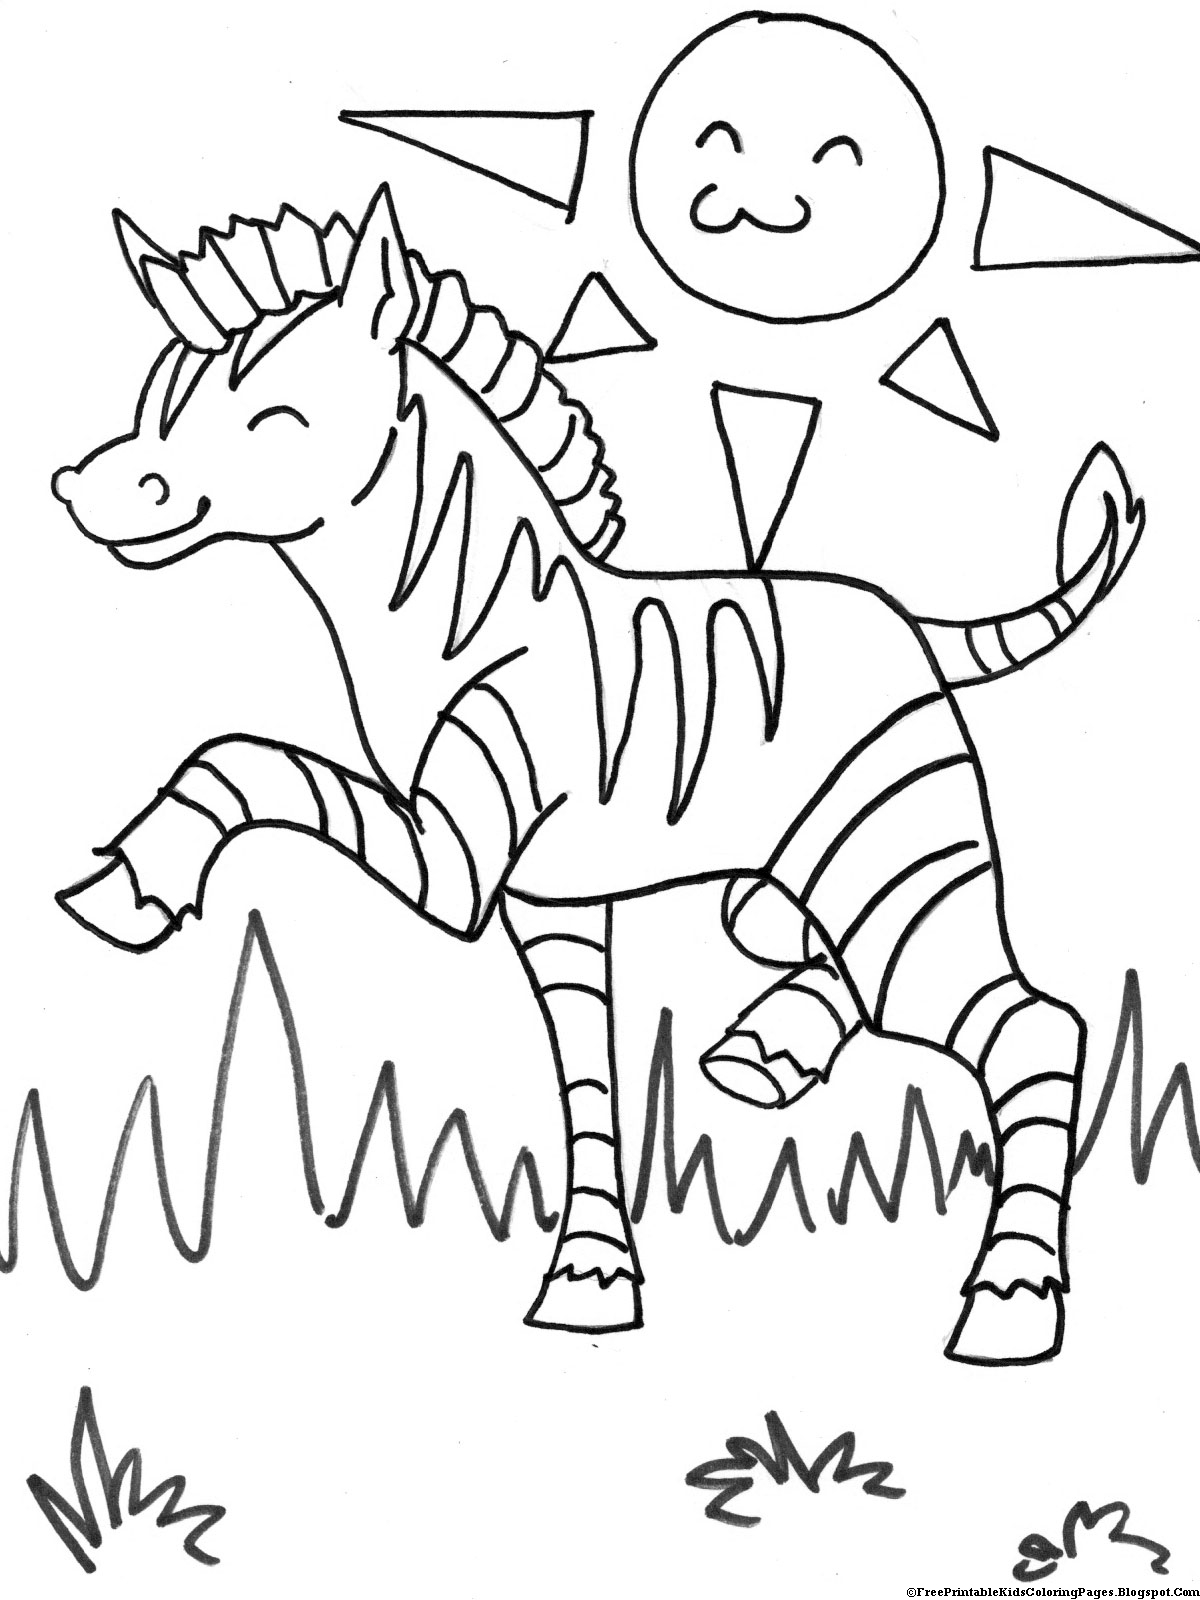 Gratifying image with regard to zebra coloring pages printable